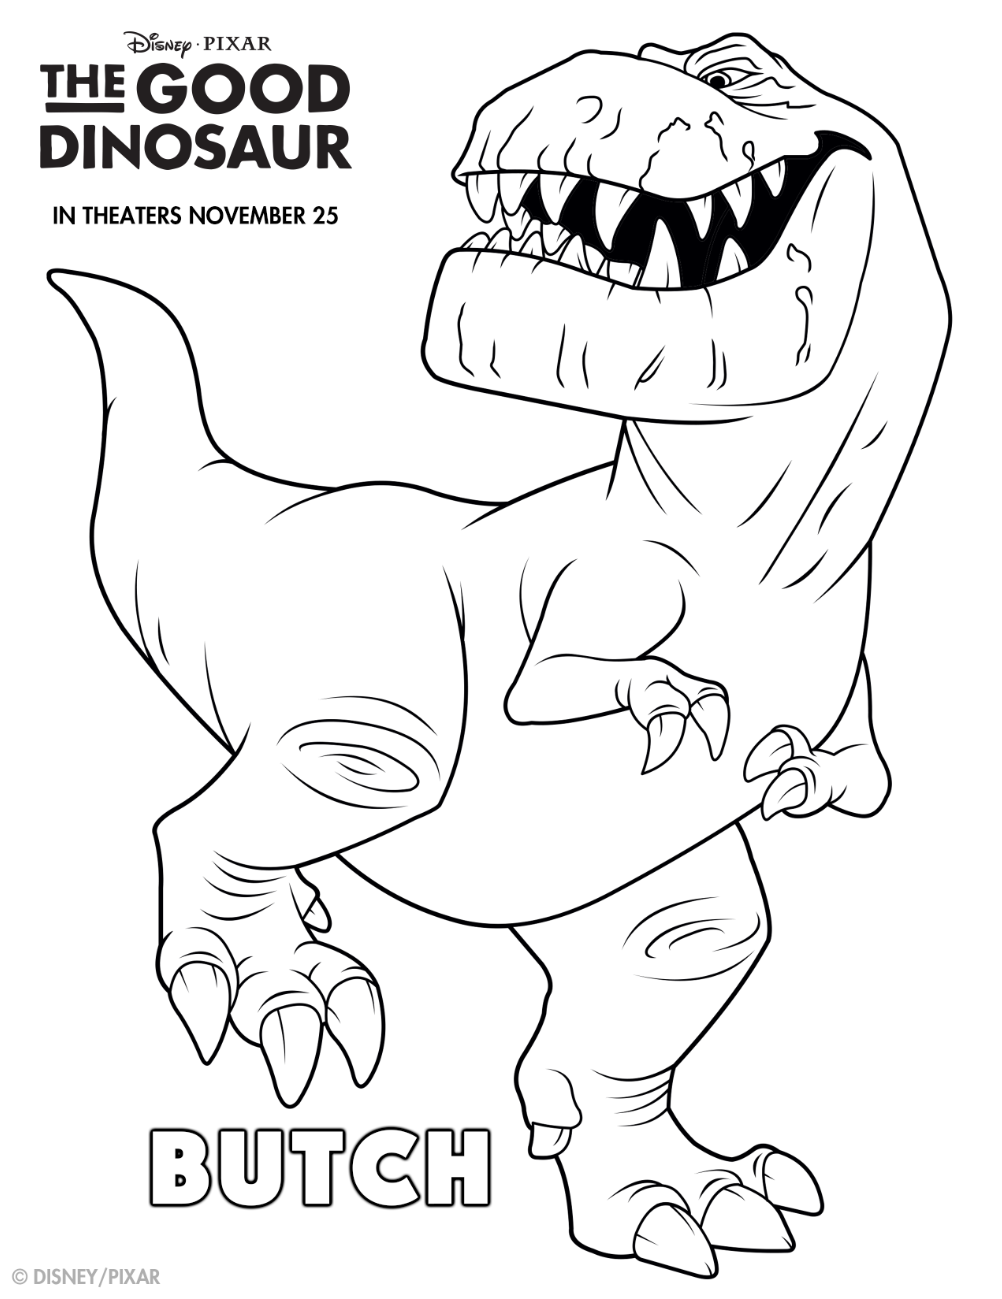 Take a bite out of life with this Good Dino coloring sheet! Meet ...